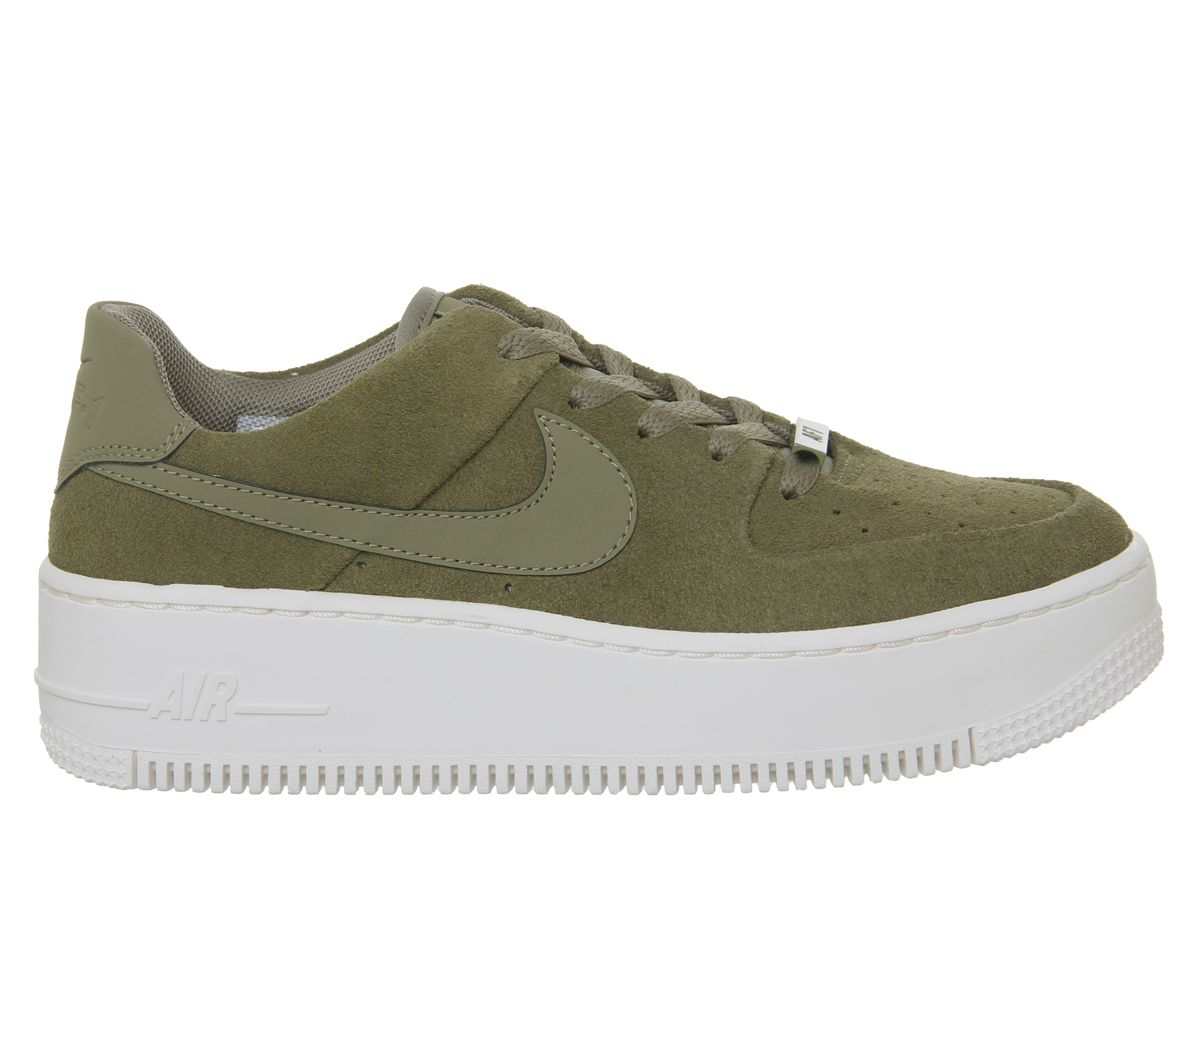 04127644d Nike Air Force 1 Sage Trainers Trooper Phantom - Hers trainers